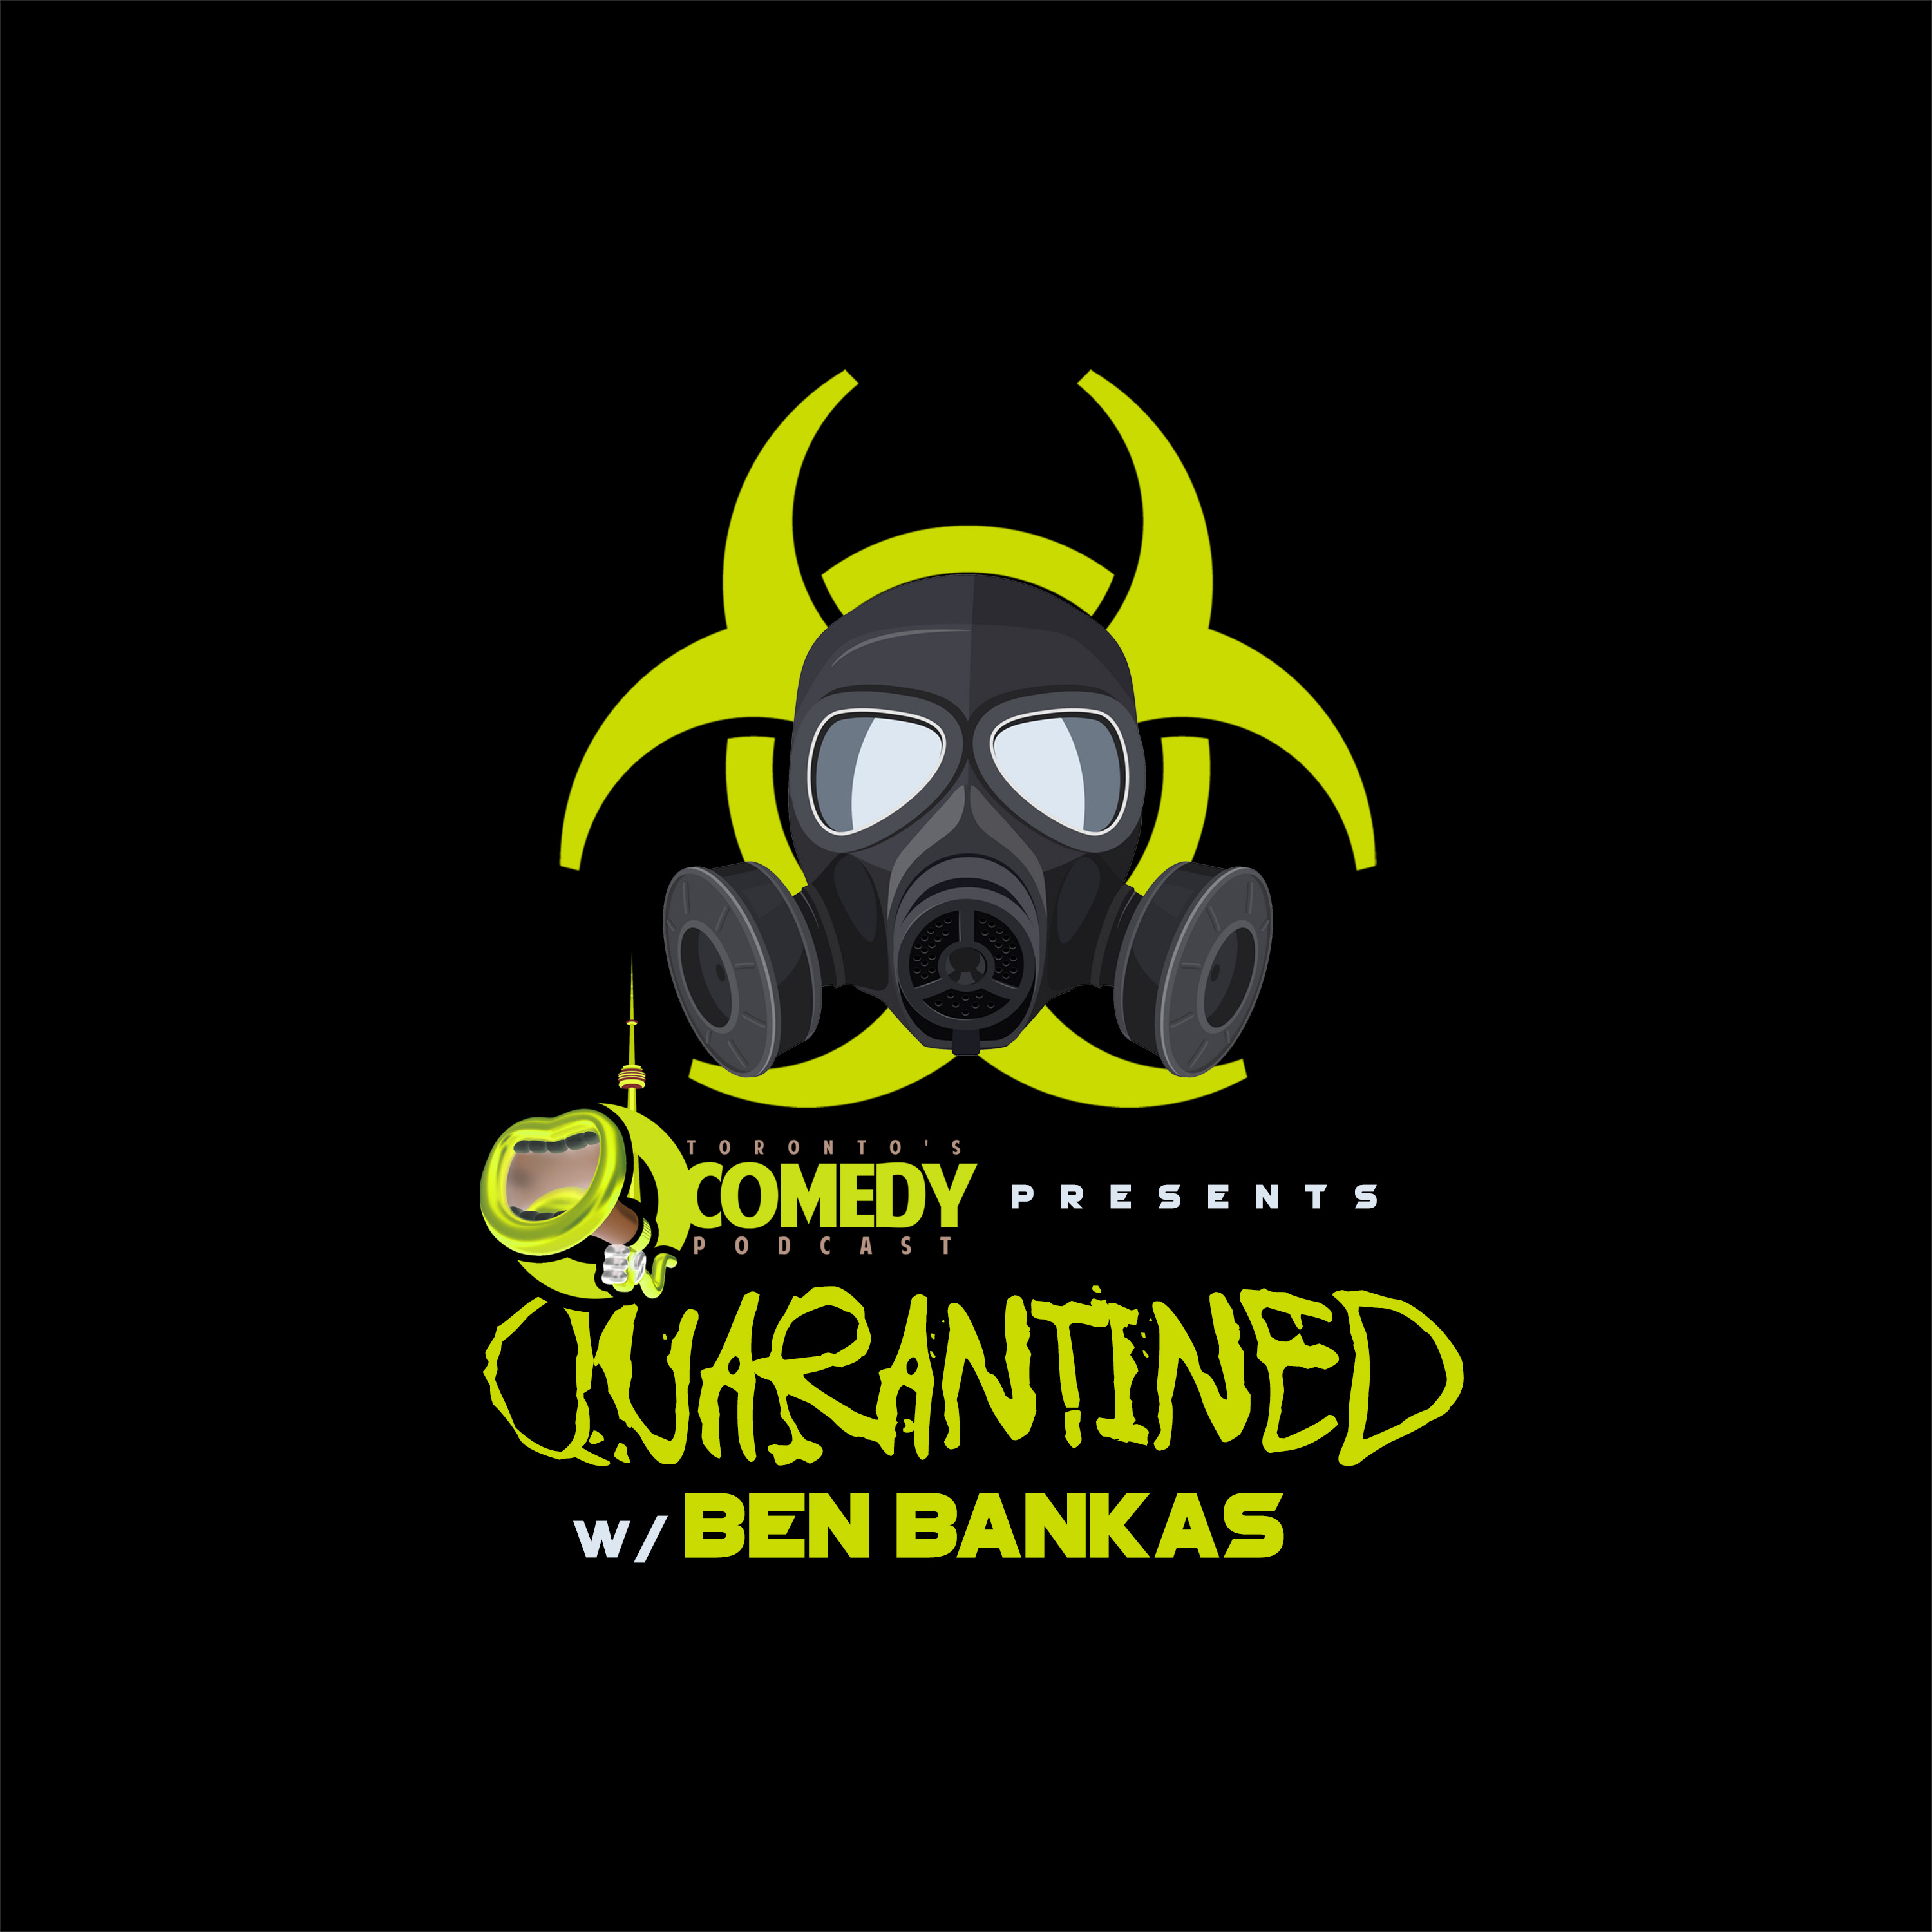 #34 Toronto Comedy Podcast Network Presents: Quarantined #12